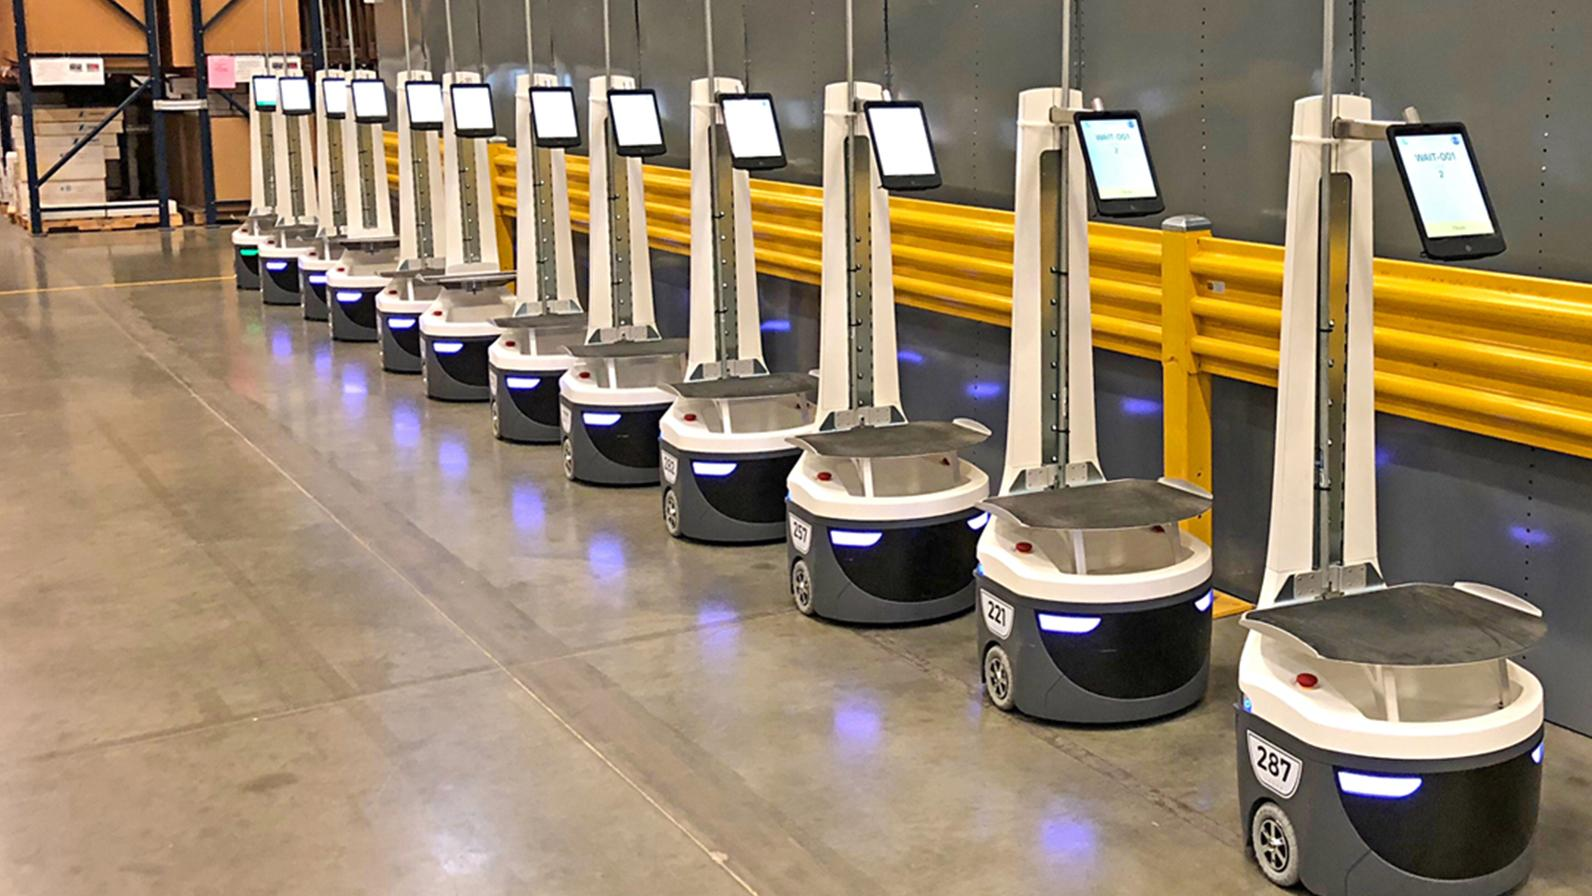 Warehouse robots are changing the world. All these robots are connected to 5G/LTE/Wi-Fi